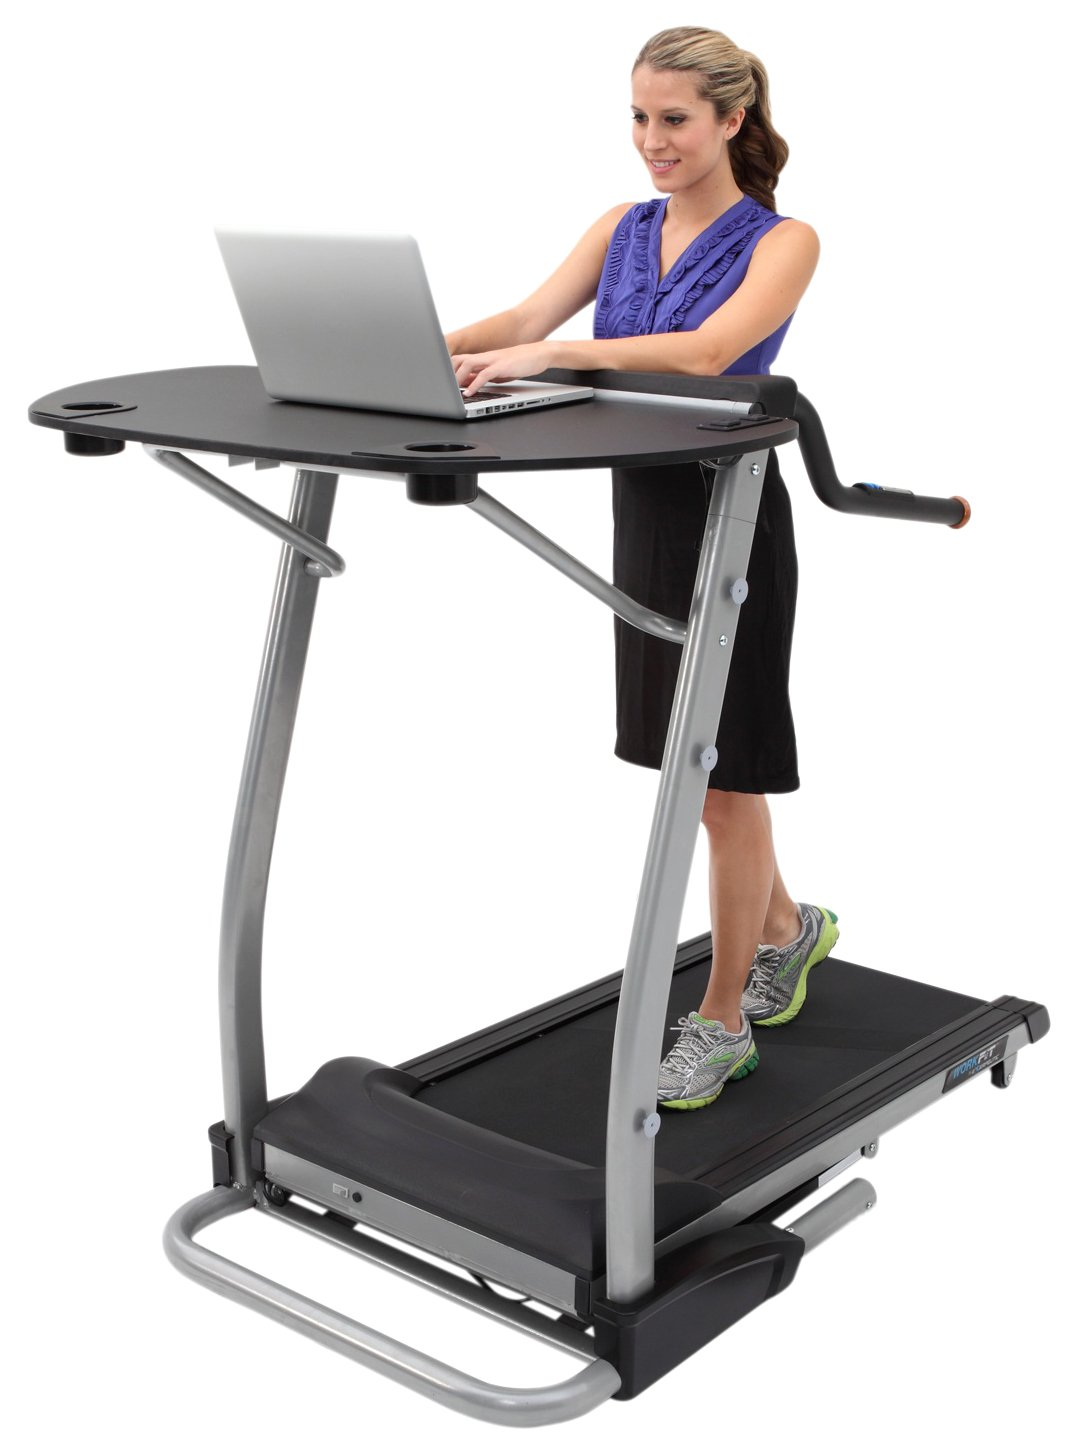 Exerpeutic 2000 WorkFit High Capacity Desk Station Treadmill reviews